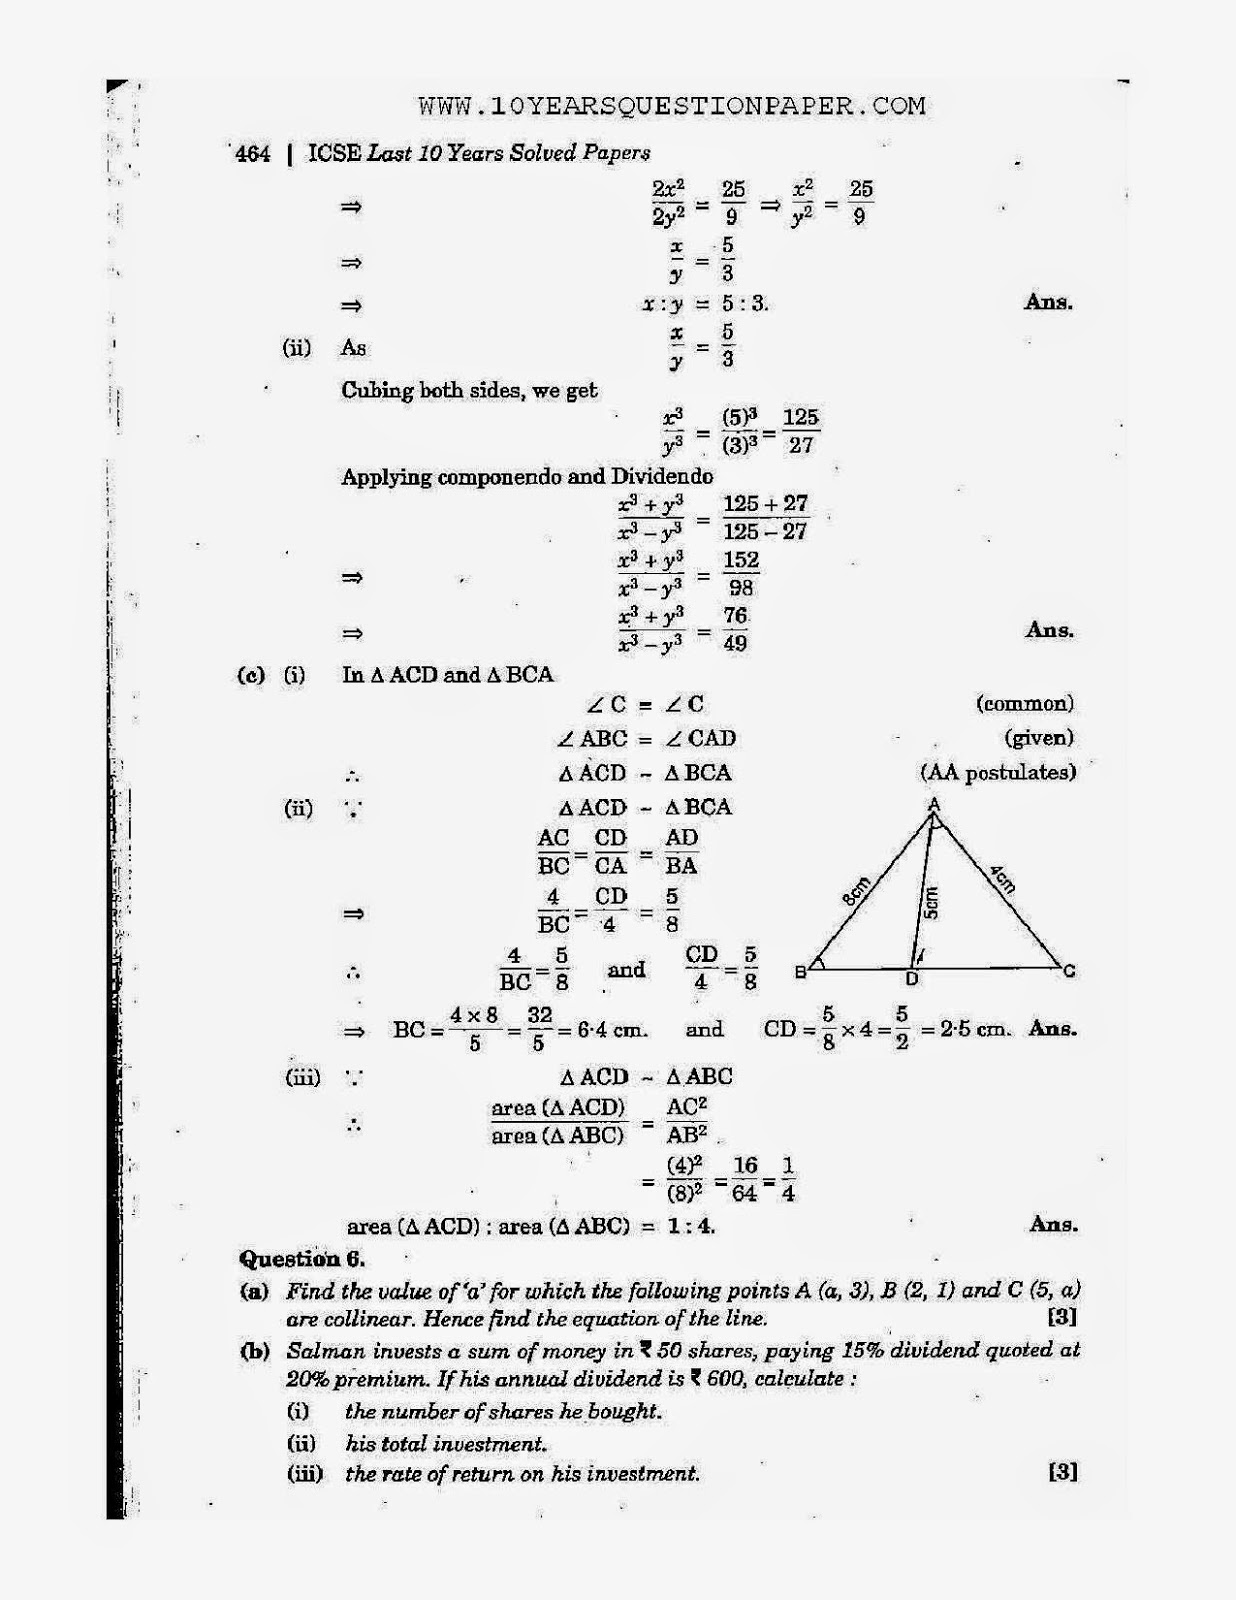 icse specimen question papers 2014 mathematics Icse class 10 question paper 2014 can find out what kind of questions were asked in this exam in the year 2014 questions from physics paper of icse exam.